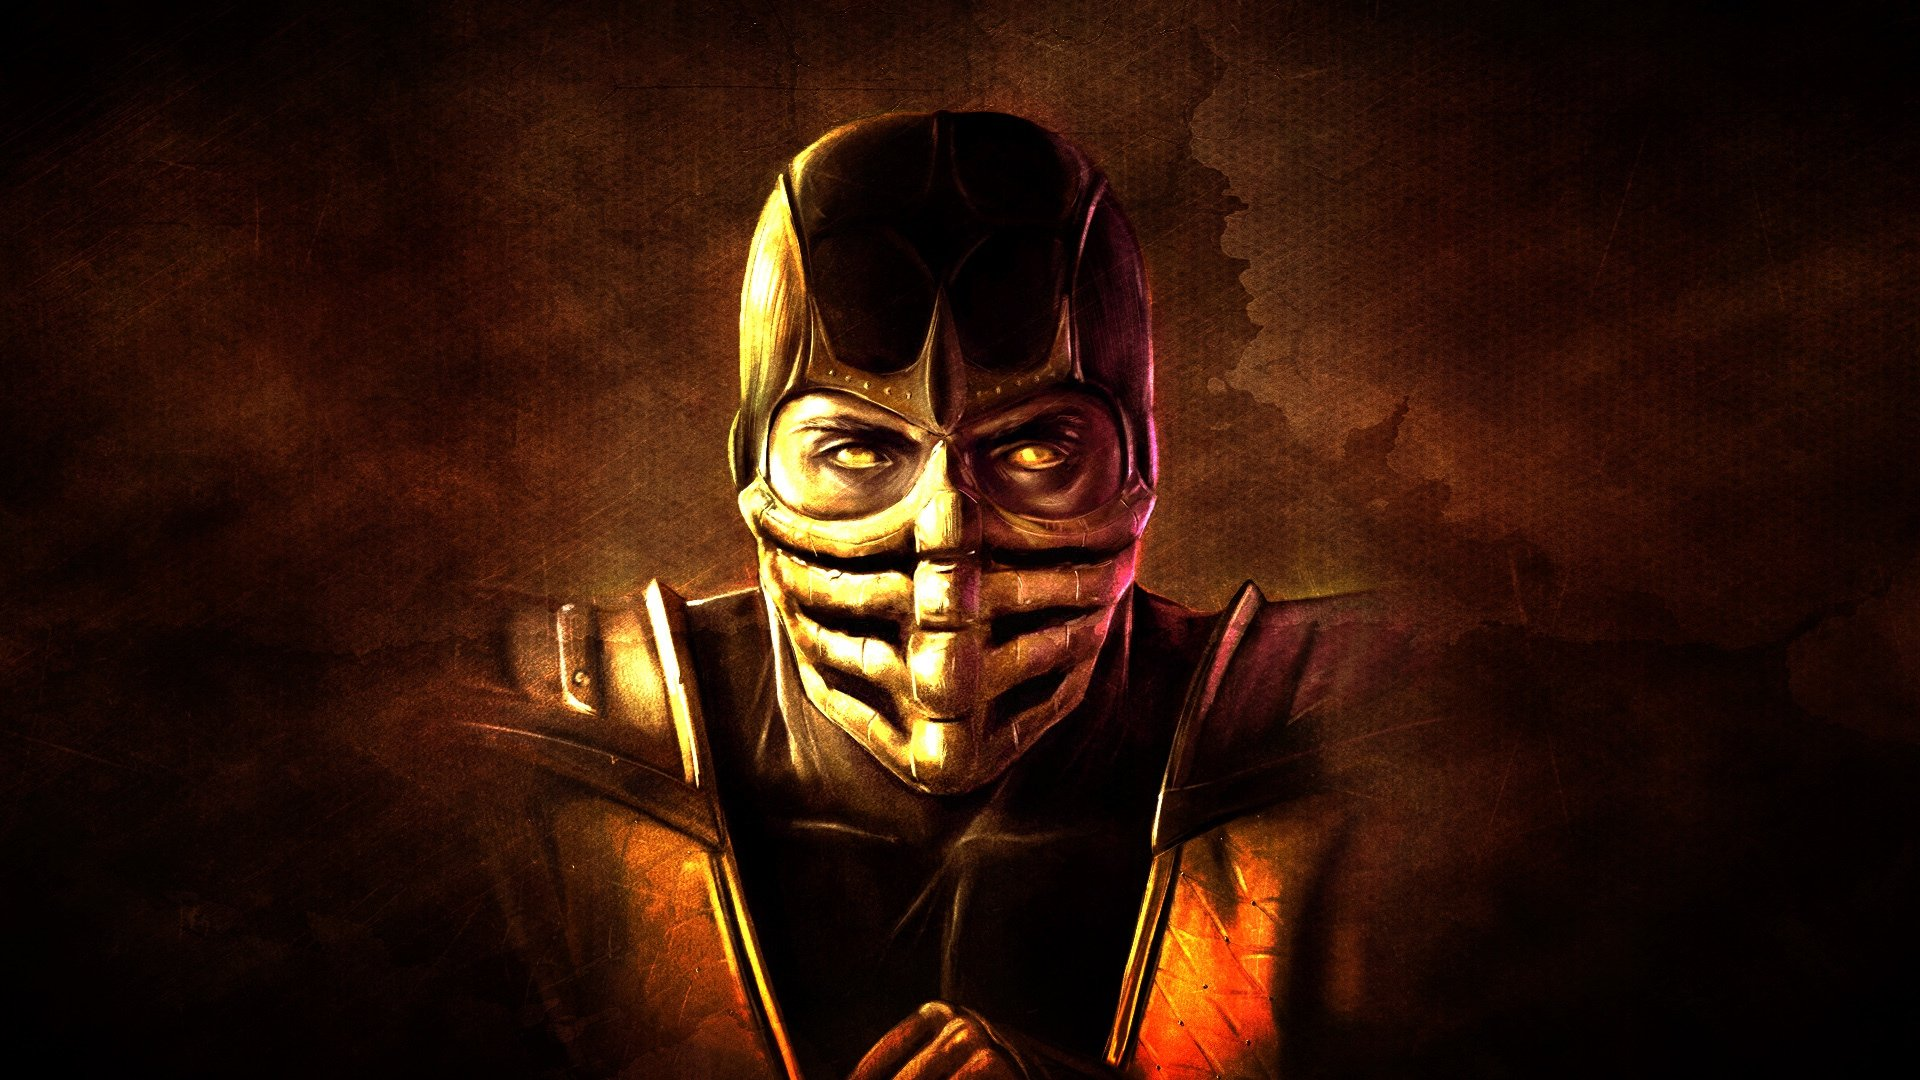 full hd scorpion mortal kombat wallpaper